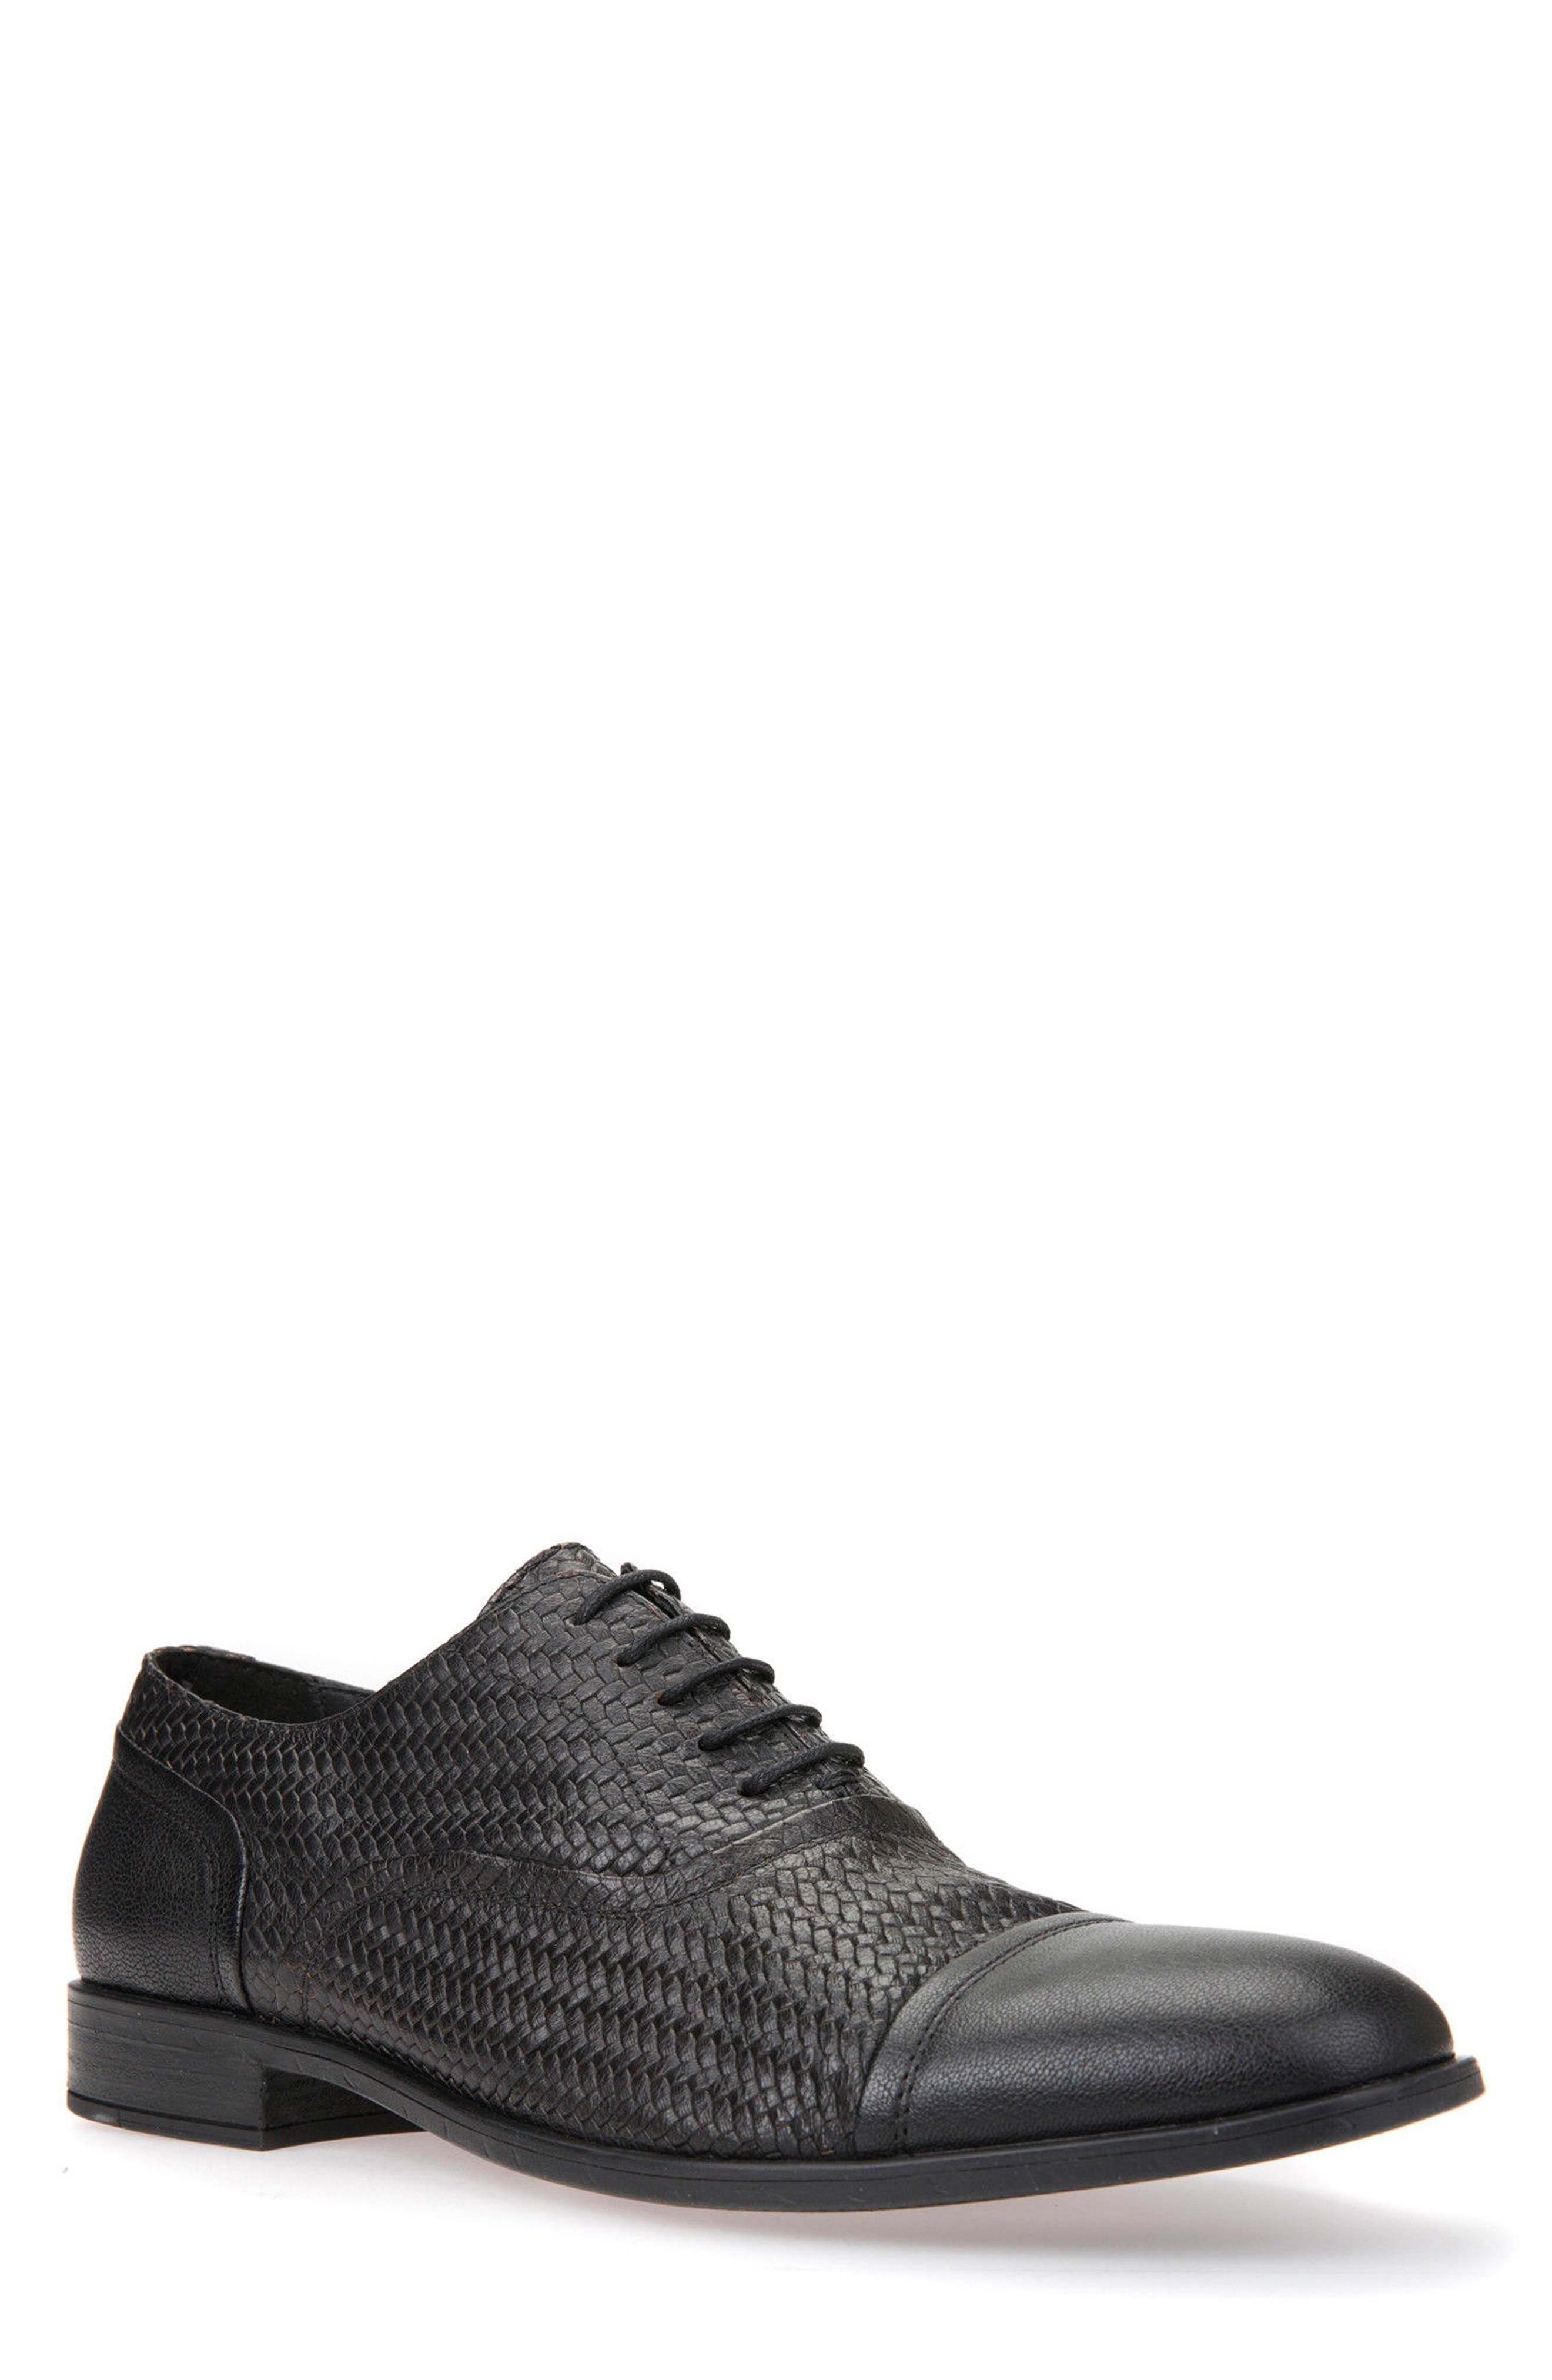 Bryceton Textured Cap Toe Oxford,                         Main,                         color, BLACK LEATHER